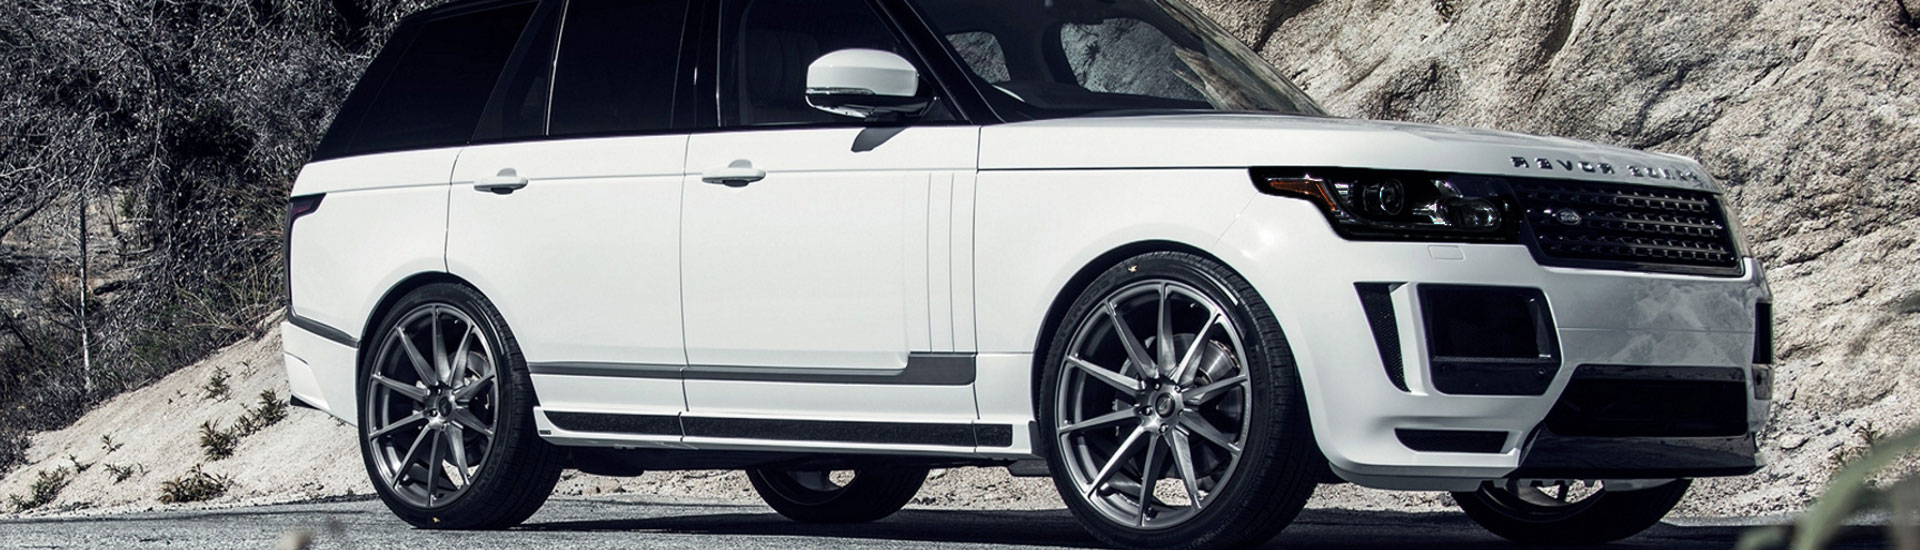 Land Rover Headlight Tint Covers